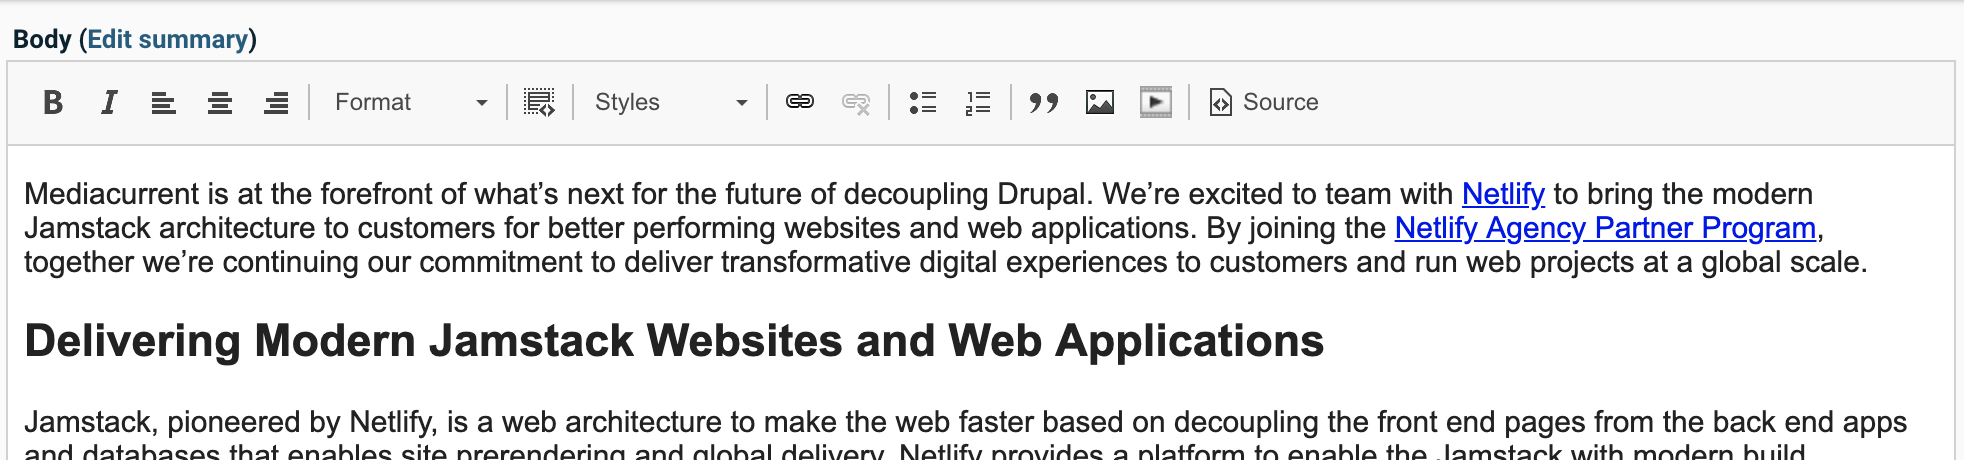 The Drupal WYSIWYG editor with some copy written and formatted